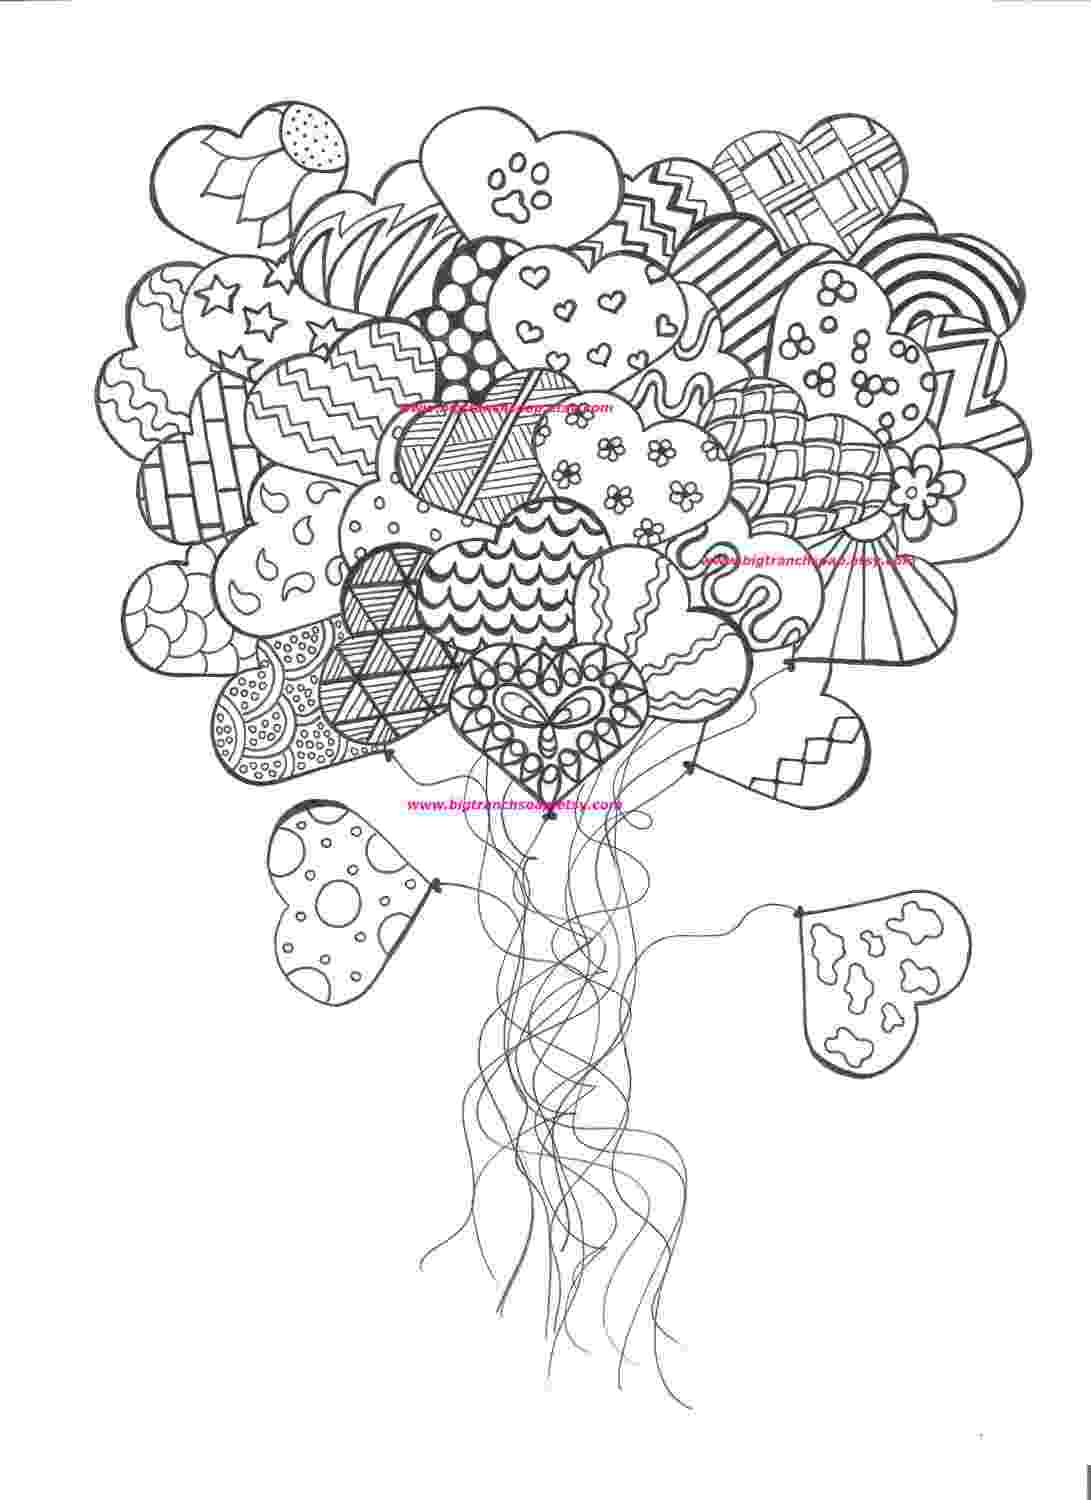 coloring book for grown ups printable free coloring pages round up for grown ups rachel teodoro coloring book printable for grown ups